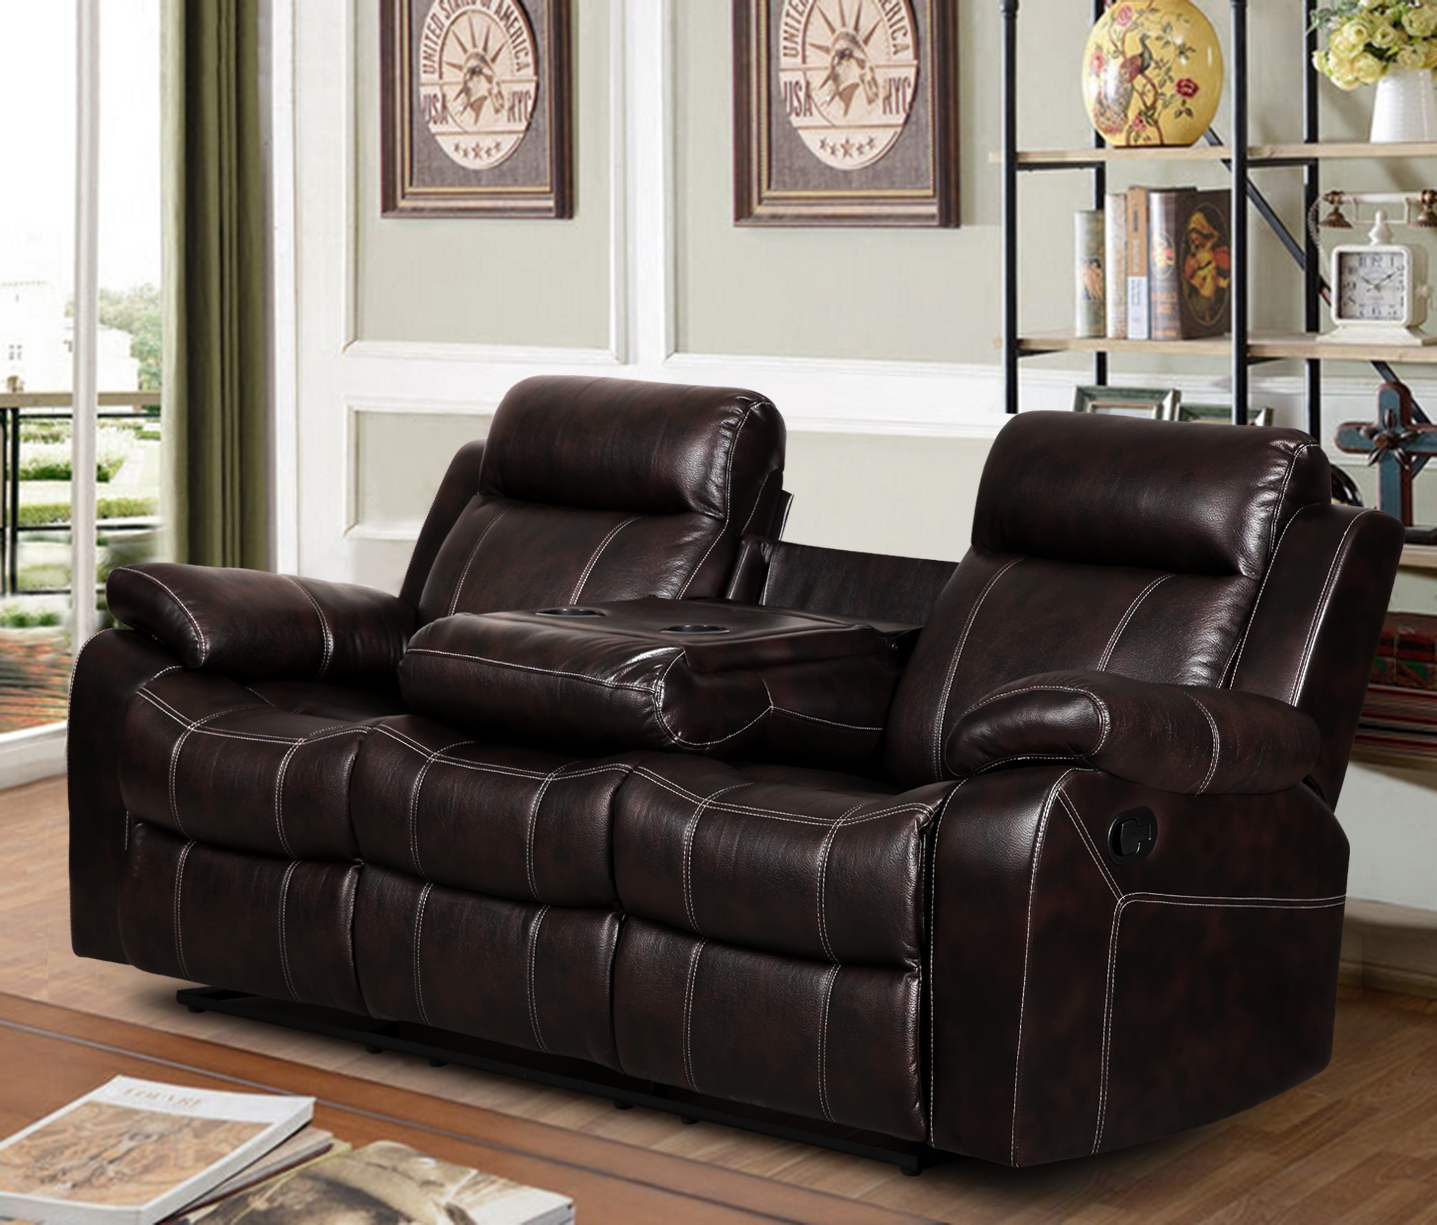 microfiber reclining sofa with drop down table dancevic harrison sofascore sectional couch recliner sofas